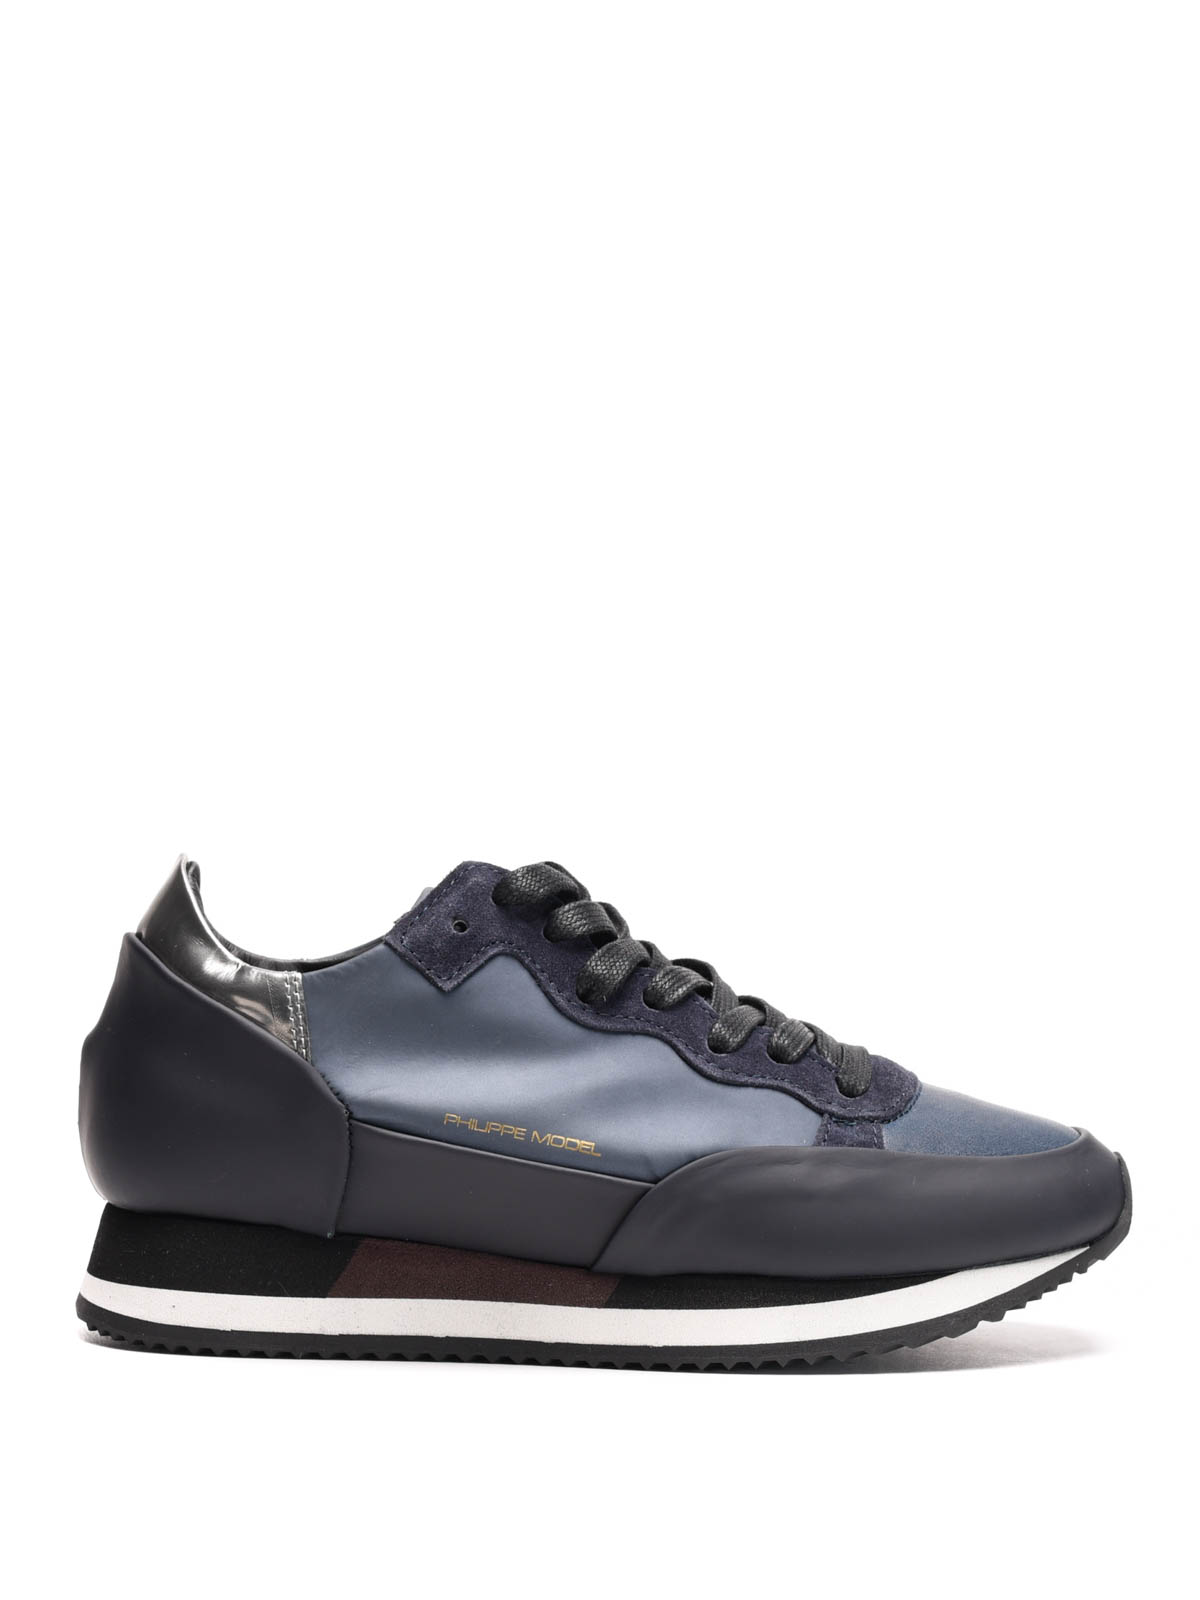 chamonix low top leather sneakers by philippe model trainers ikrix. Black Bedroom Furniture Sets. Home Design Ideas